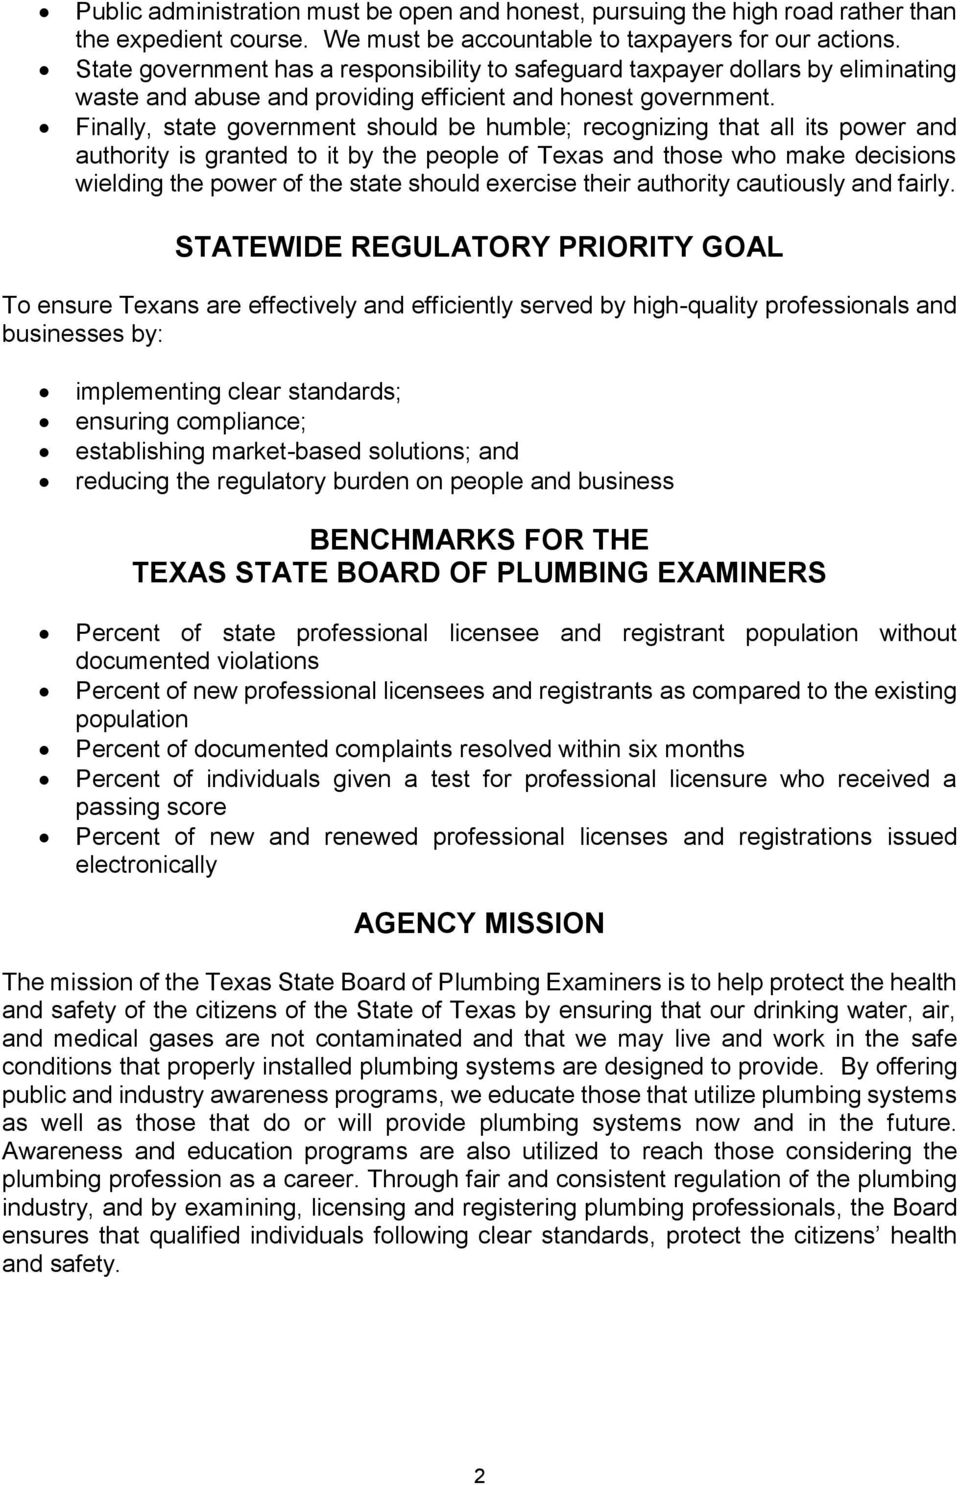 TEXAS STATE BOARD OF PLUMBING EXAMINERS - PDF